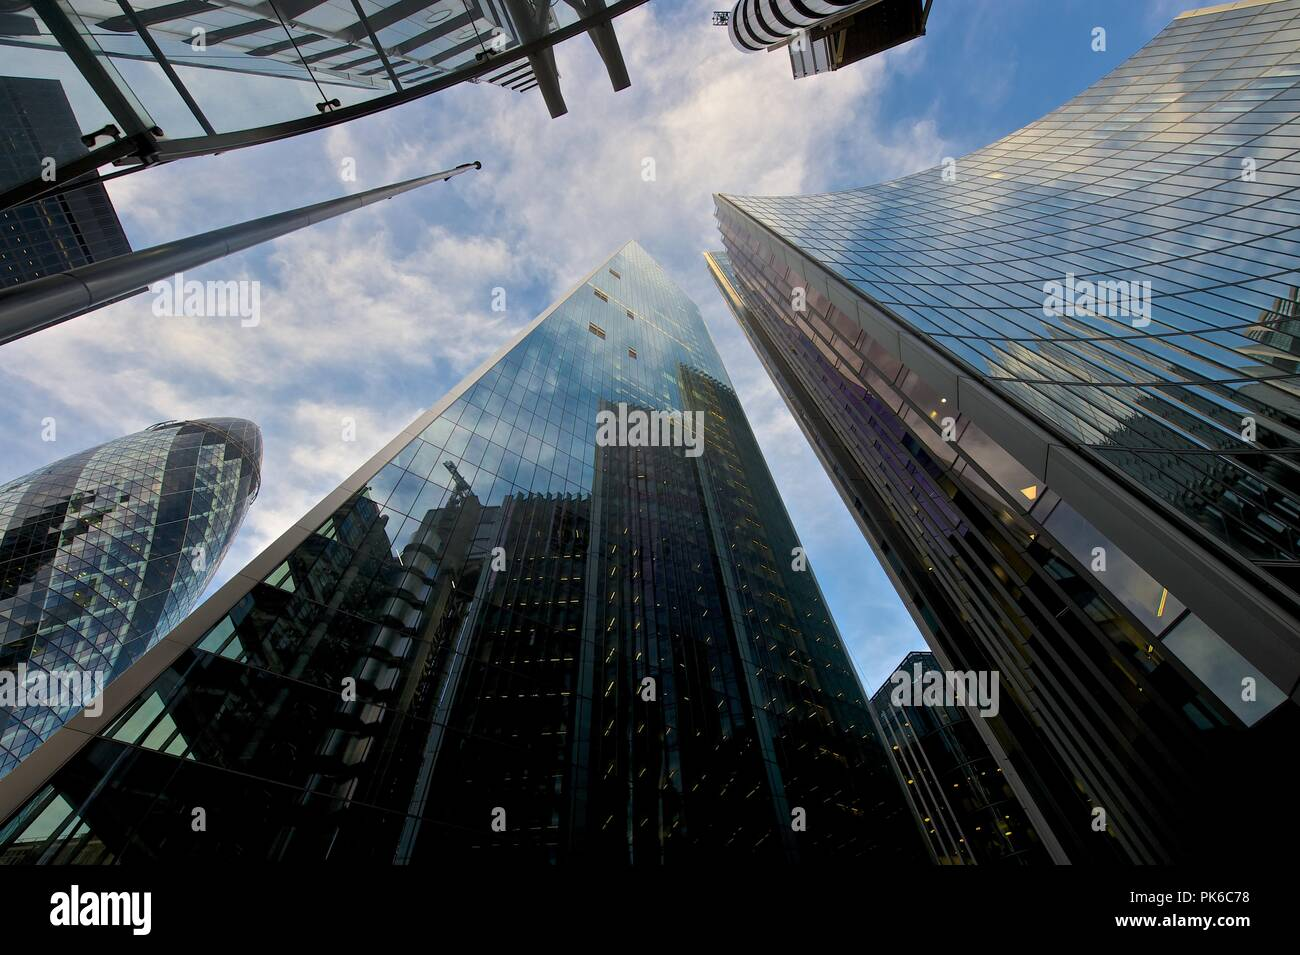 Looking up at London's sky scrapers - Stock Image